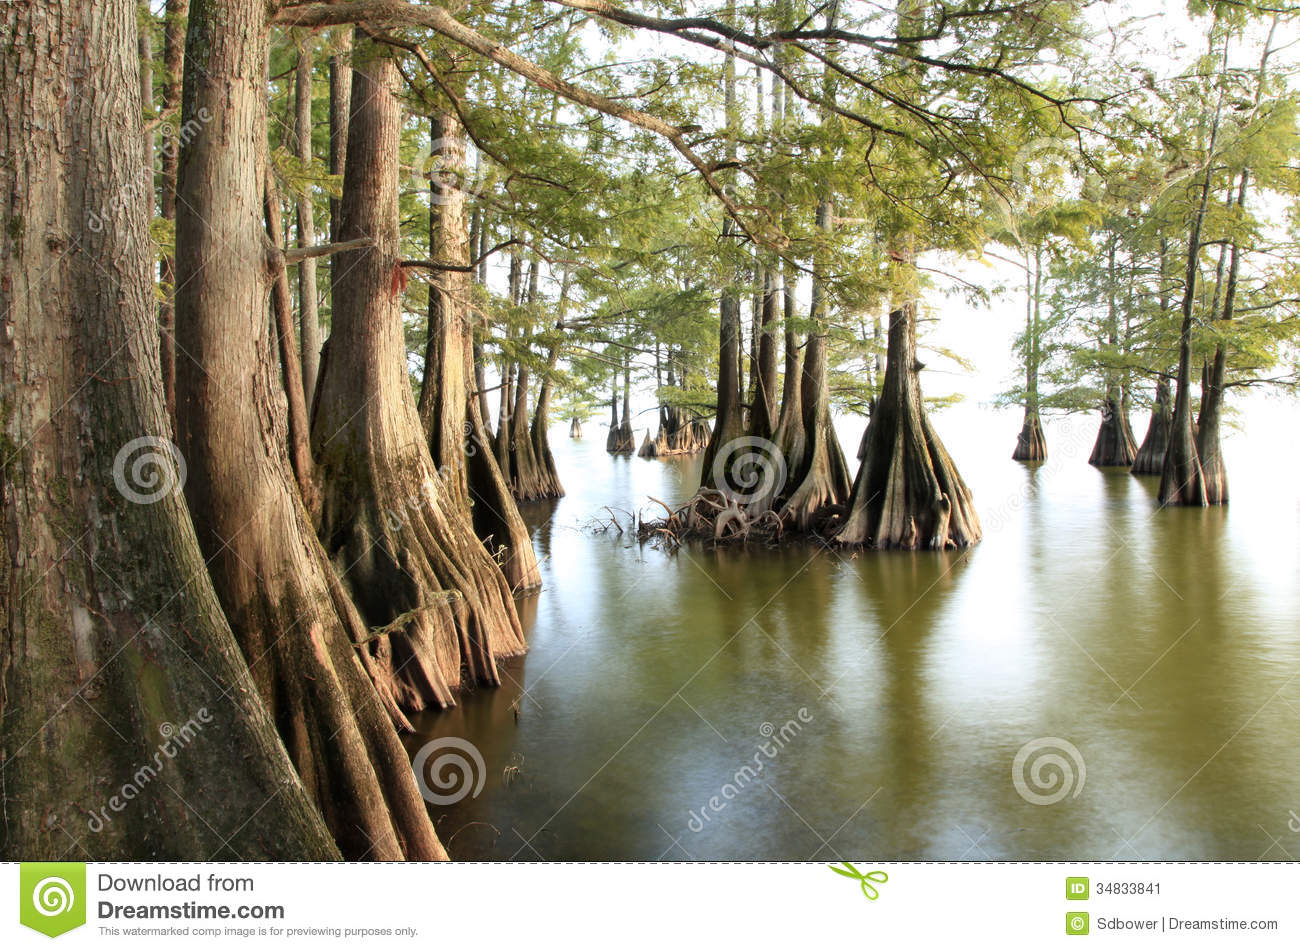 Bald Cypress Trees at the Lakes Edge as the Sun Begins to Set